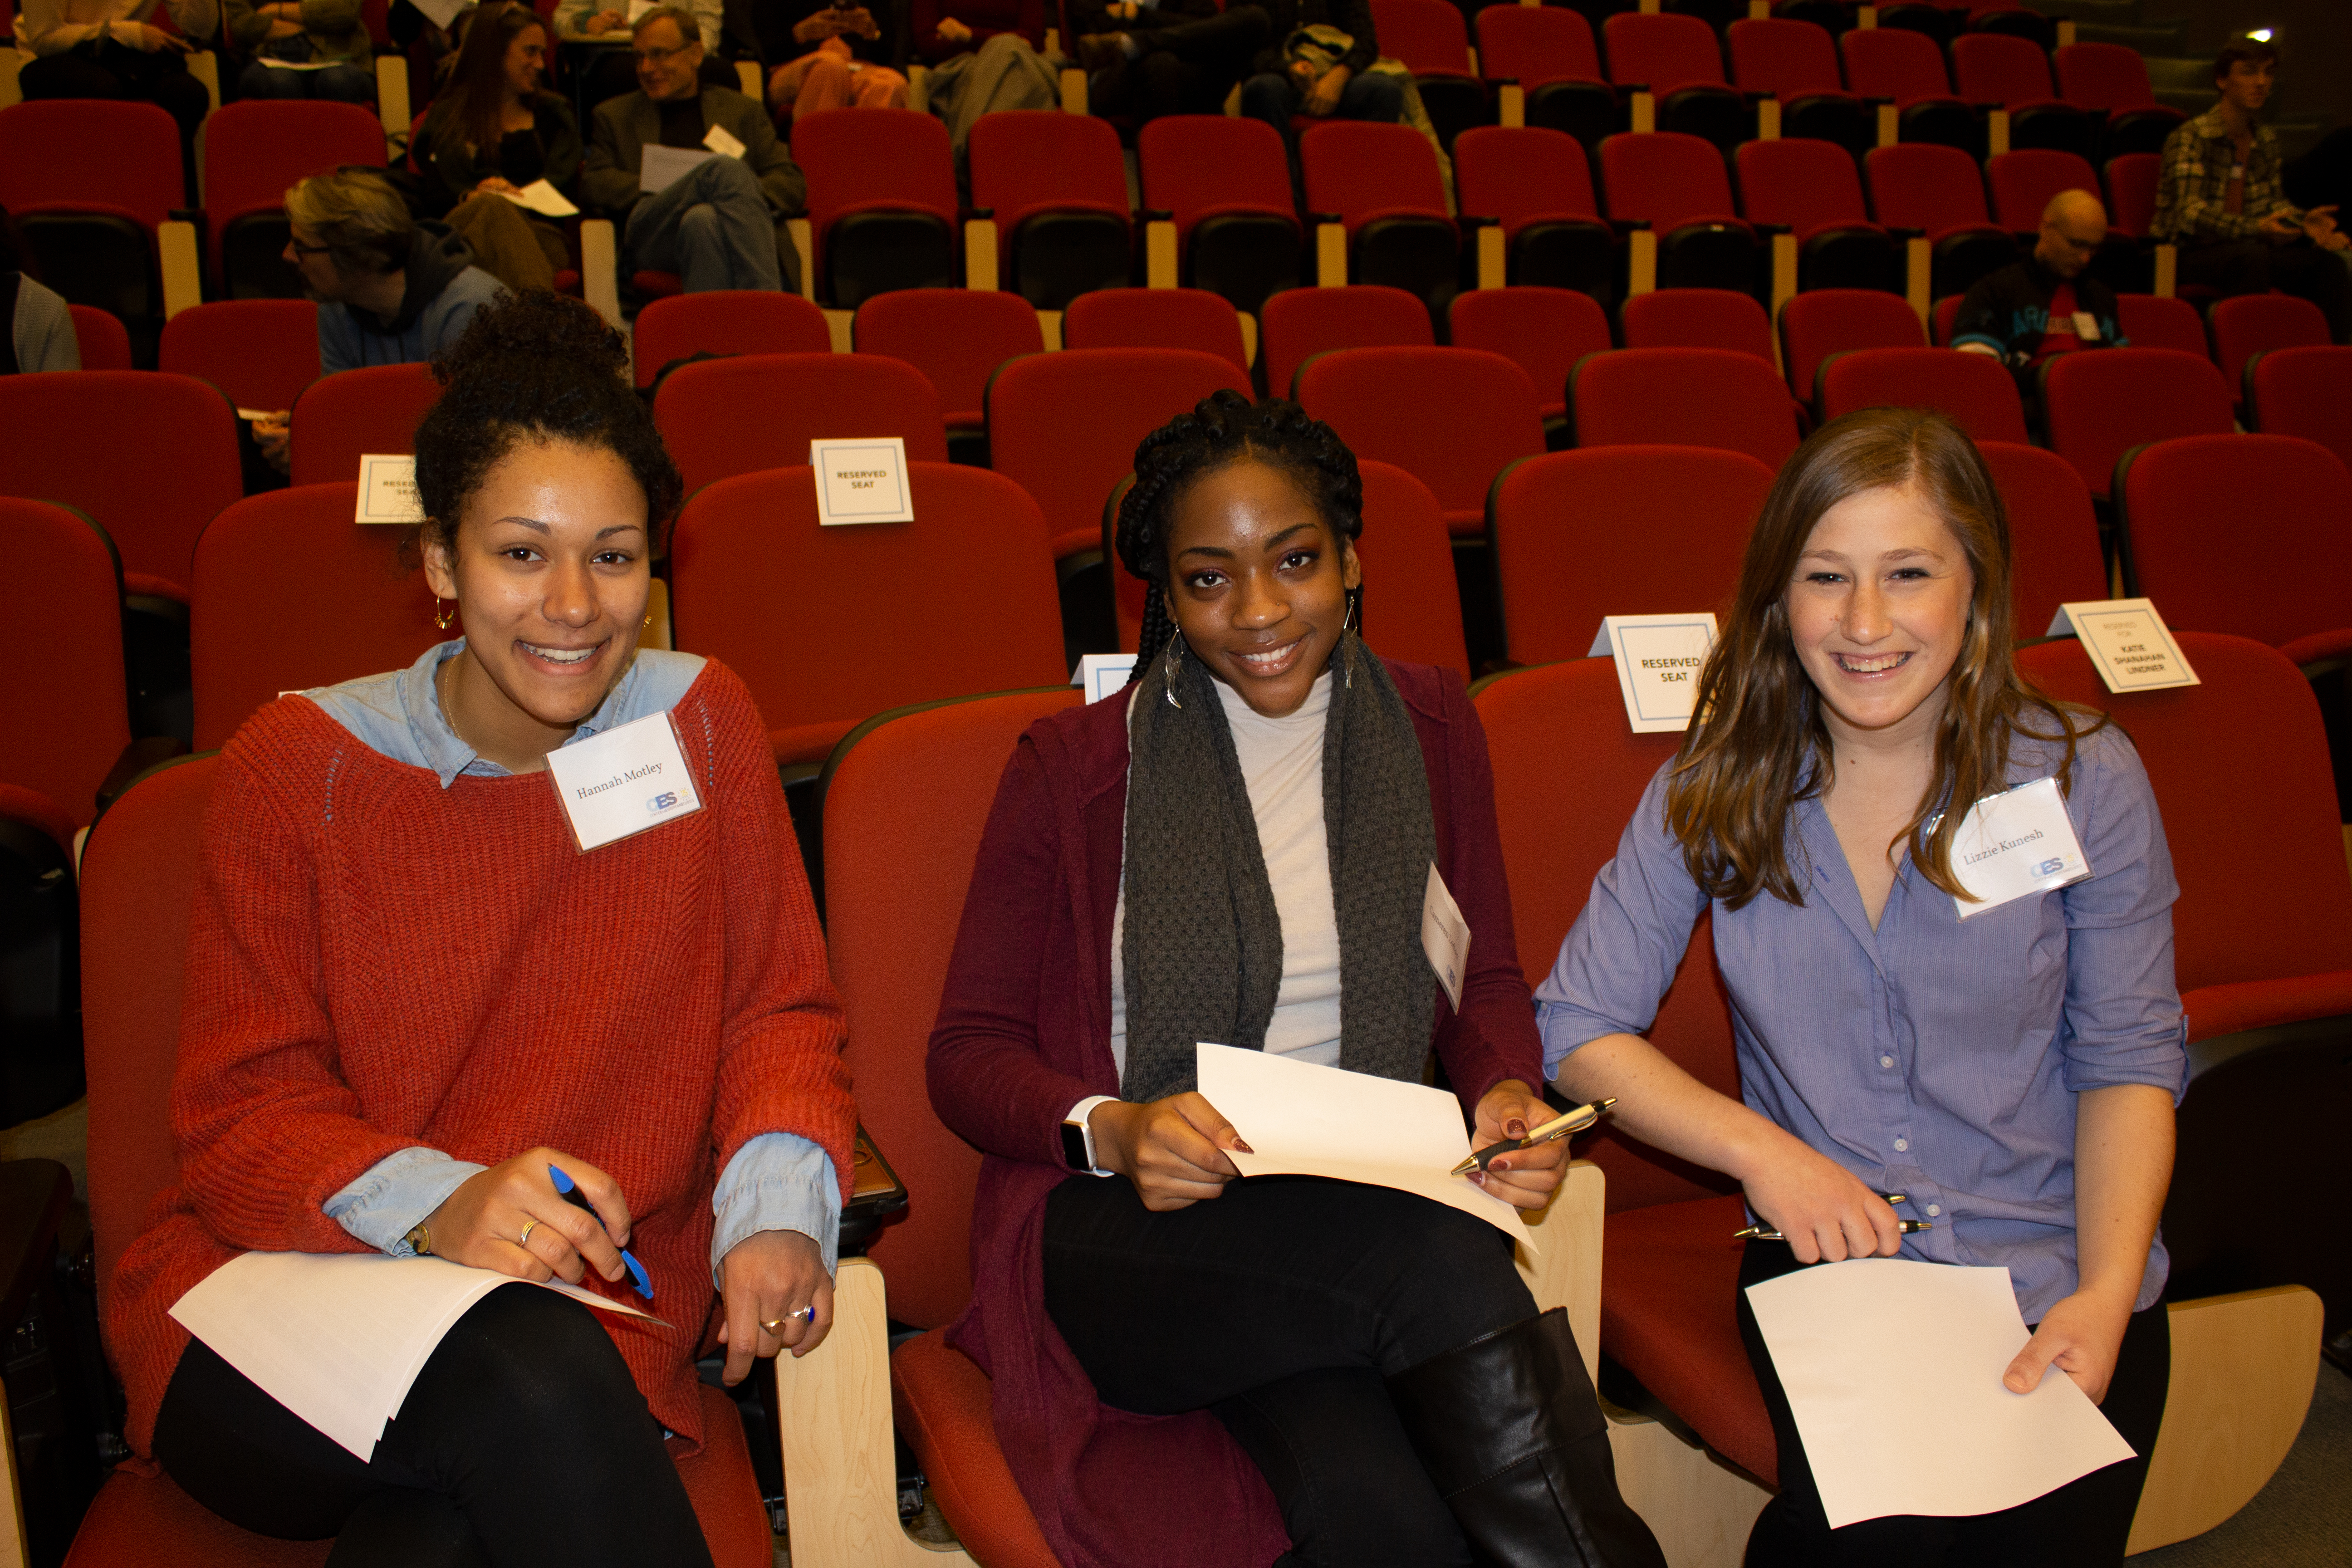 Three women sit in the front row of the auditorium holding paper and pens and smiling at the camera.